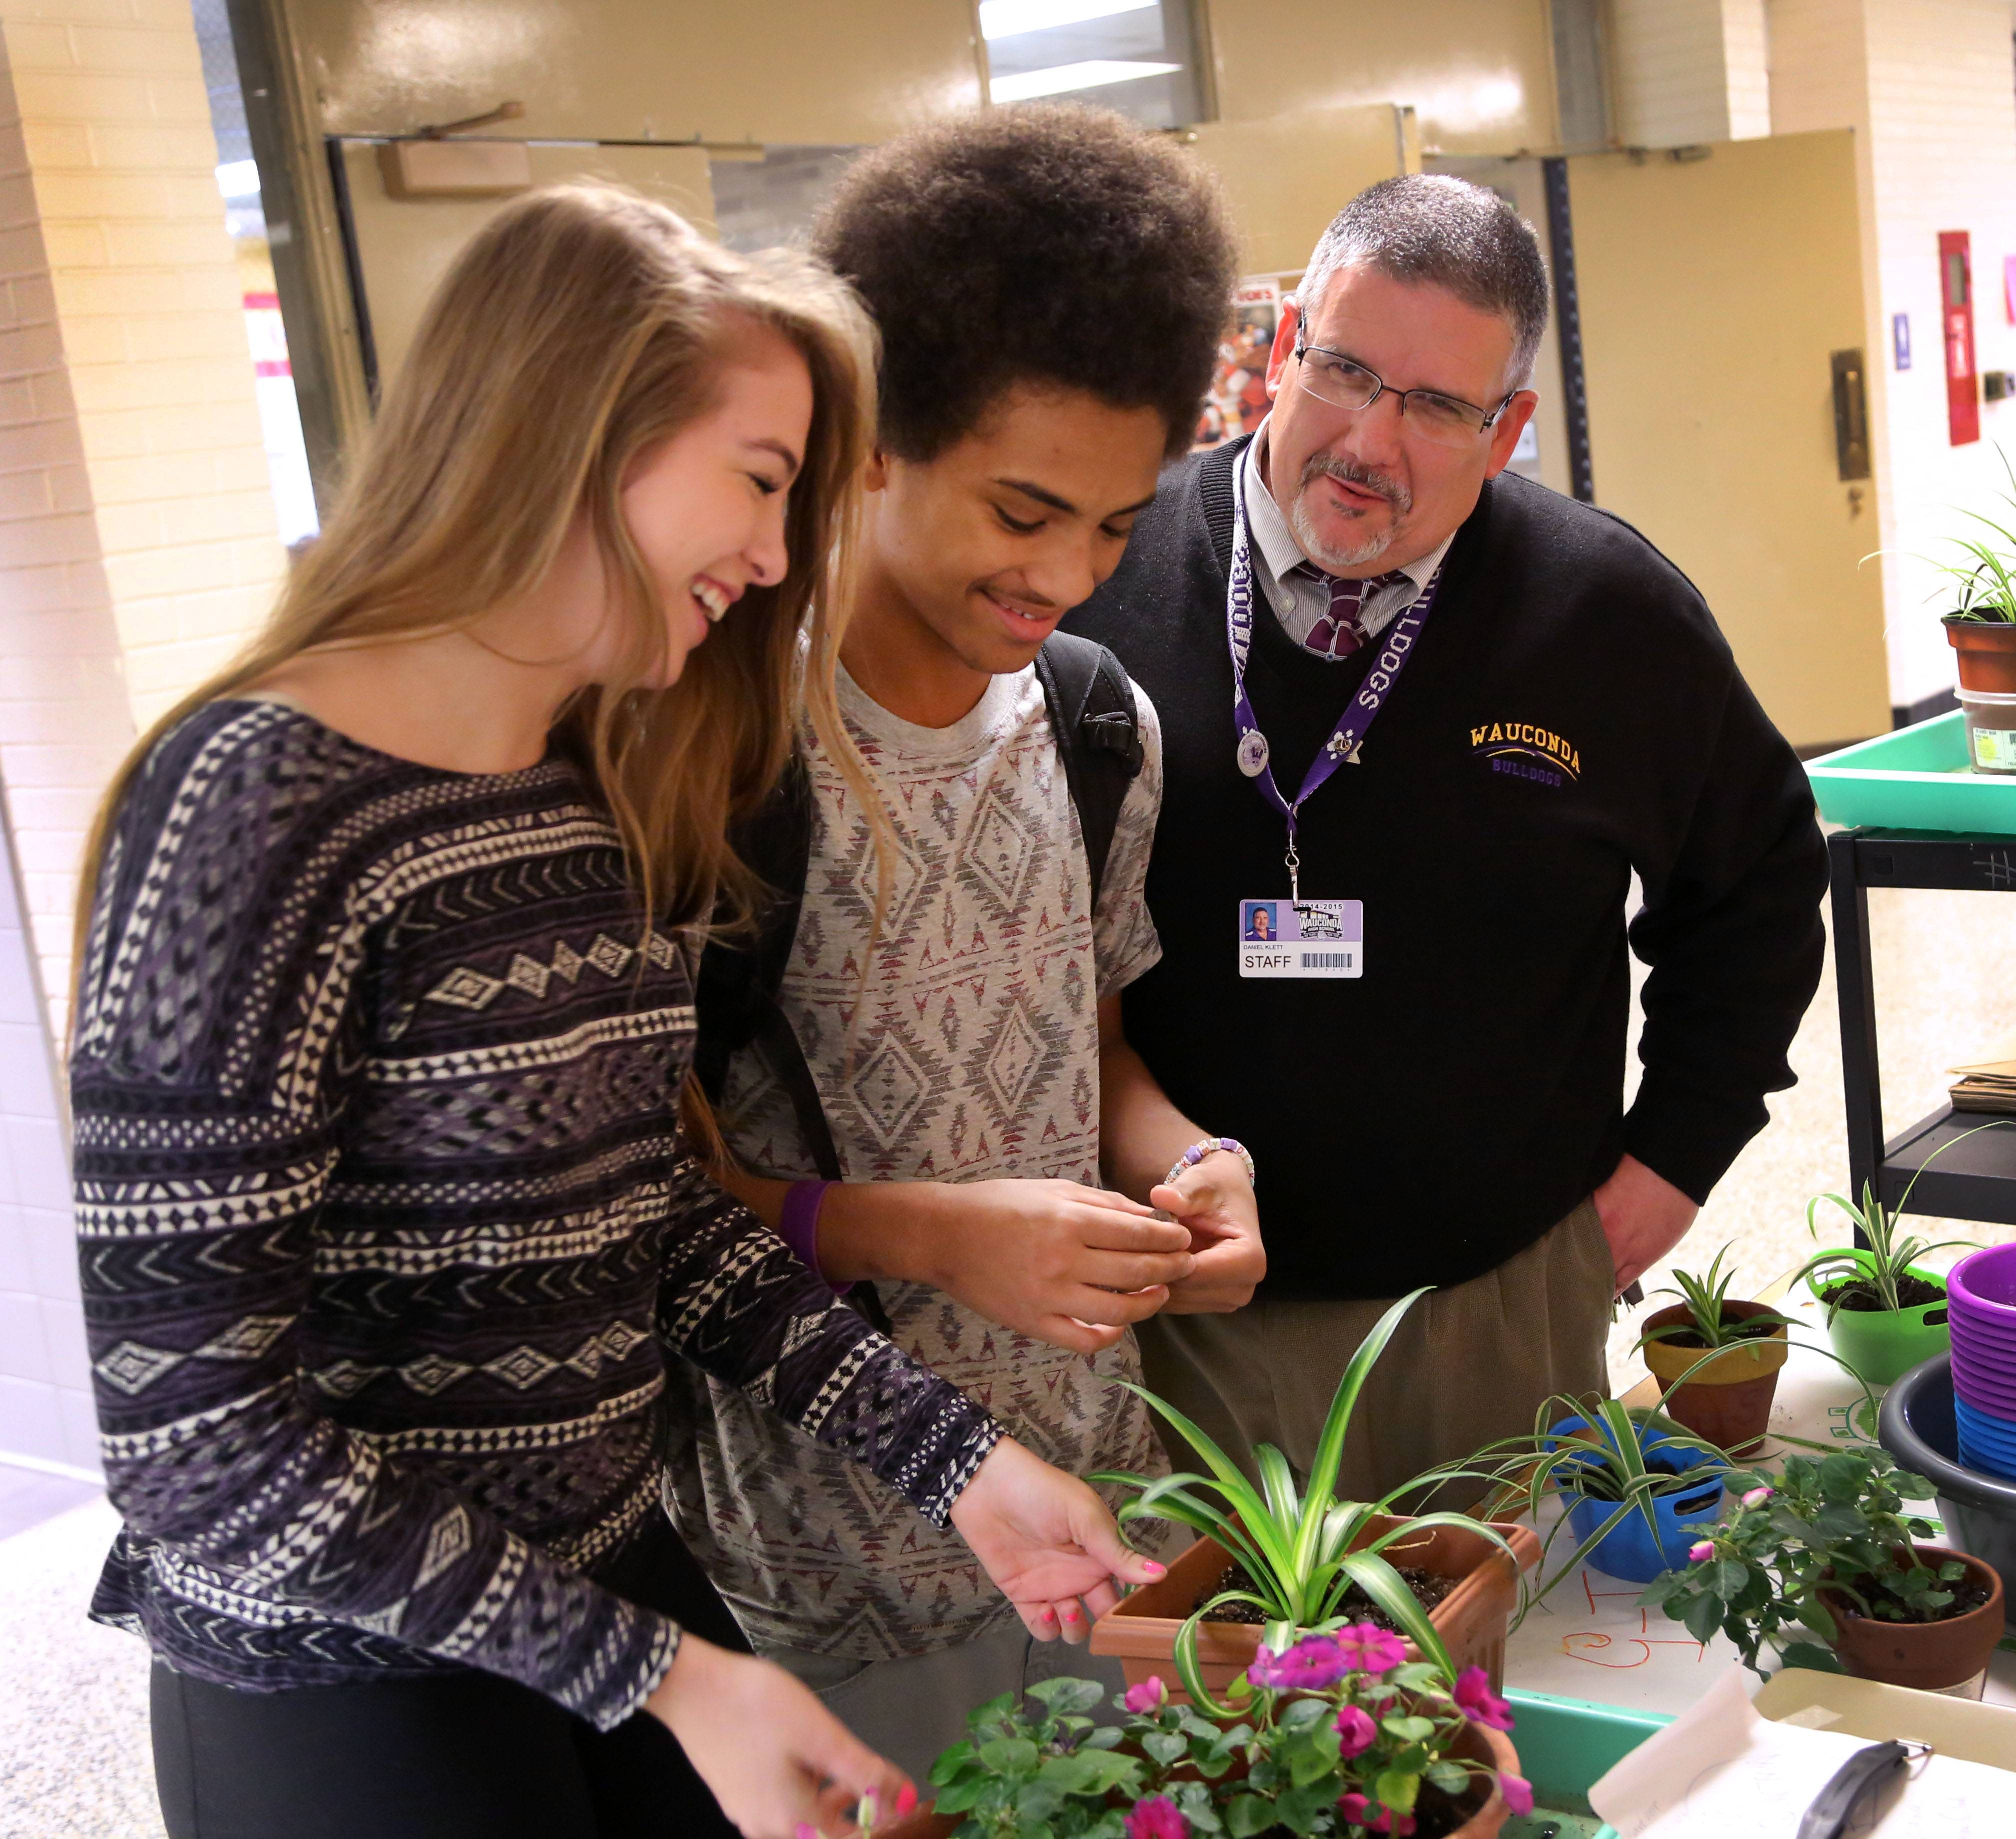 Wauconda High Principal Dan Klett, right, talks with Green Club members Alexandra Olson and Mackquon Jordan. They're both sophomores.